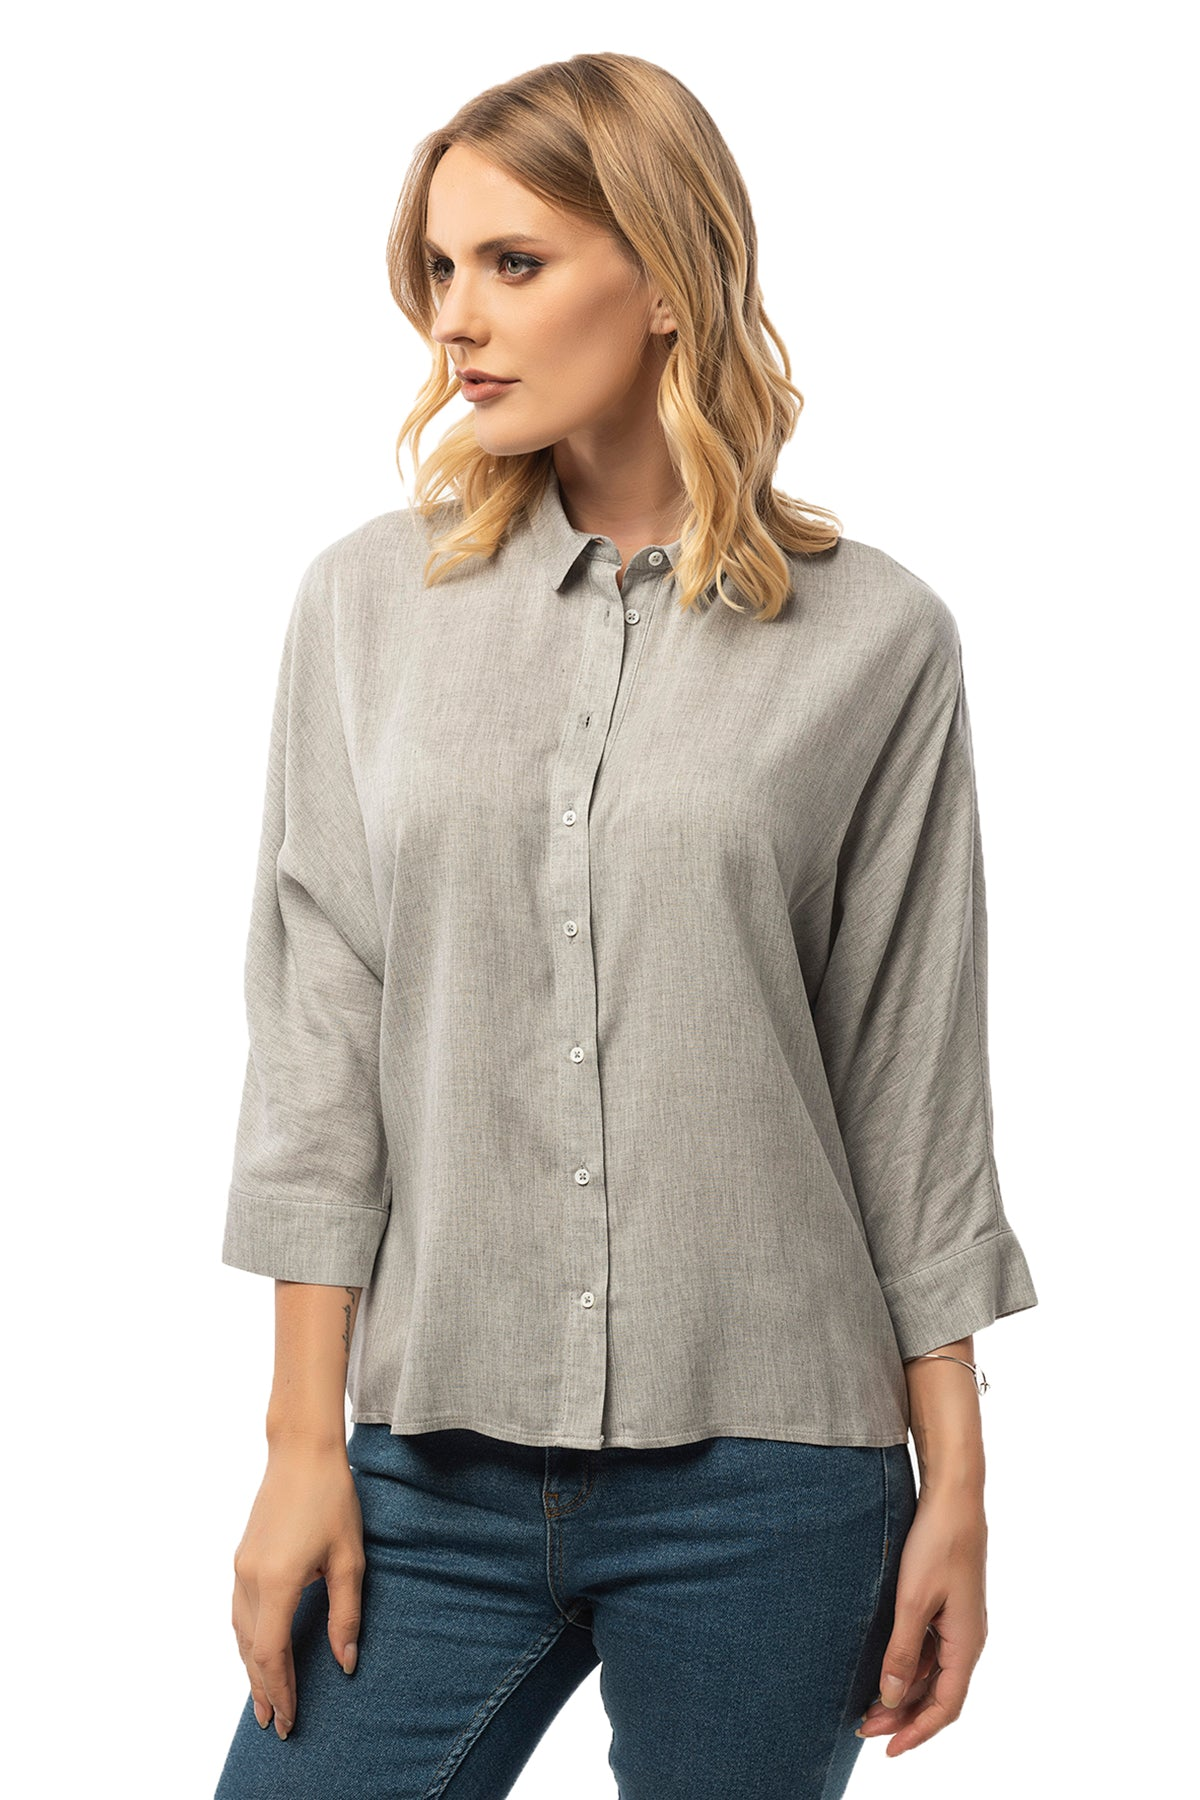 Casual Grey Shirt - 3/4 Sleeve